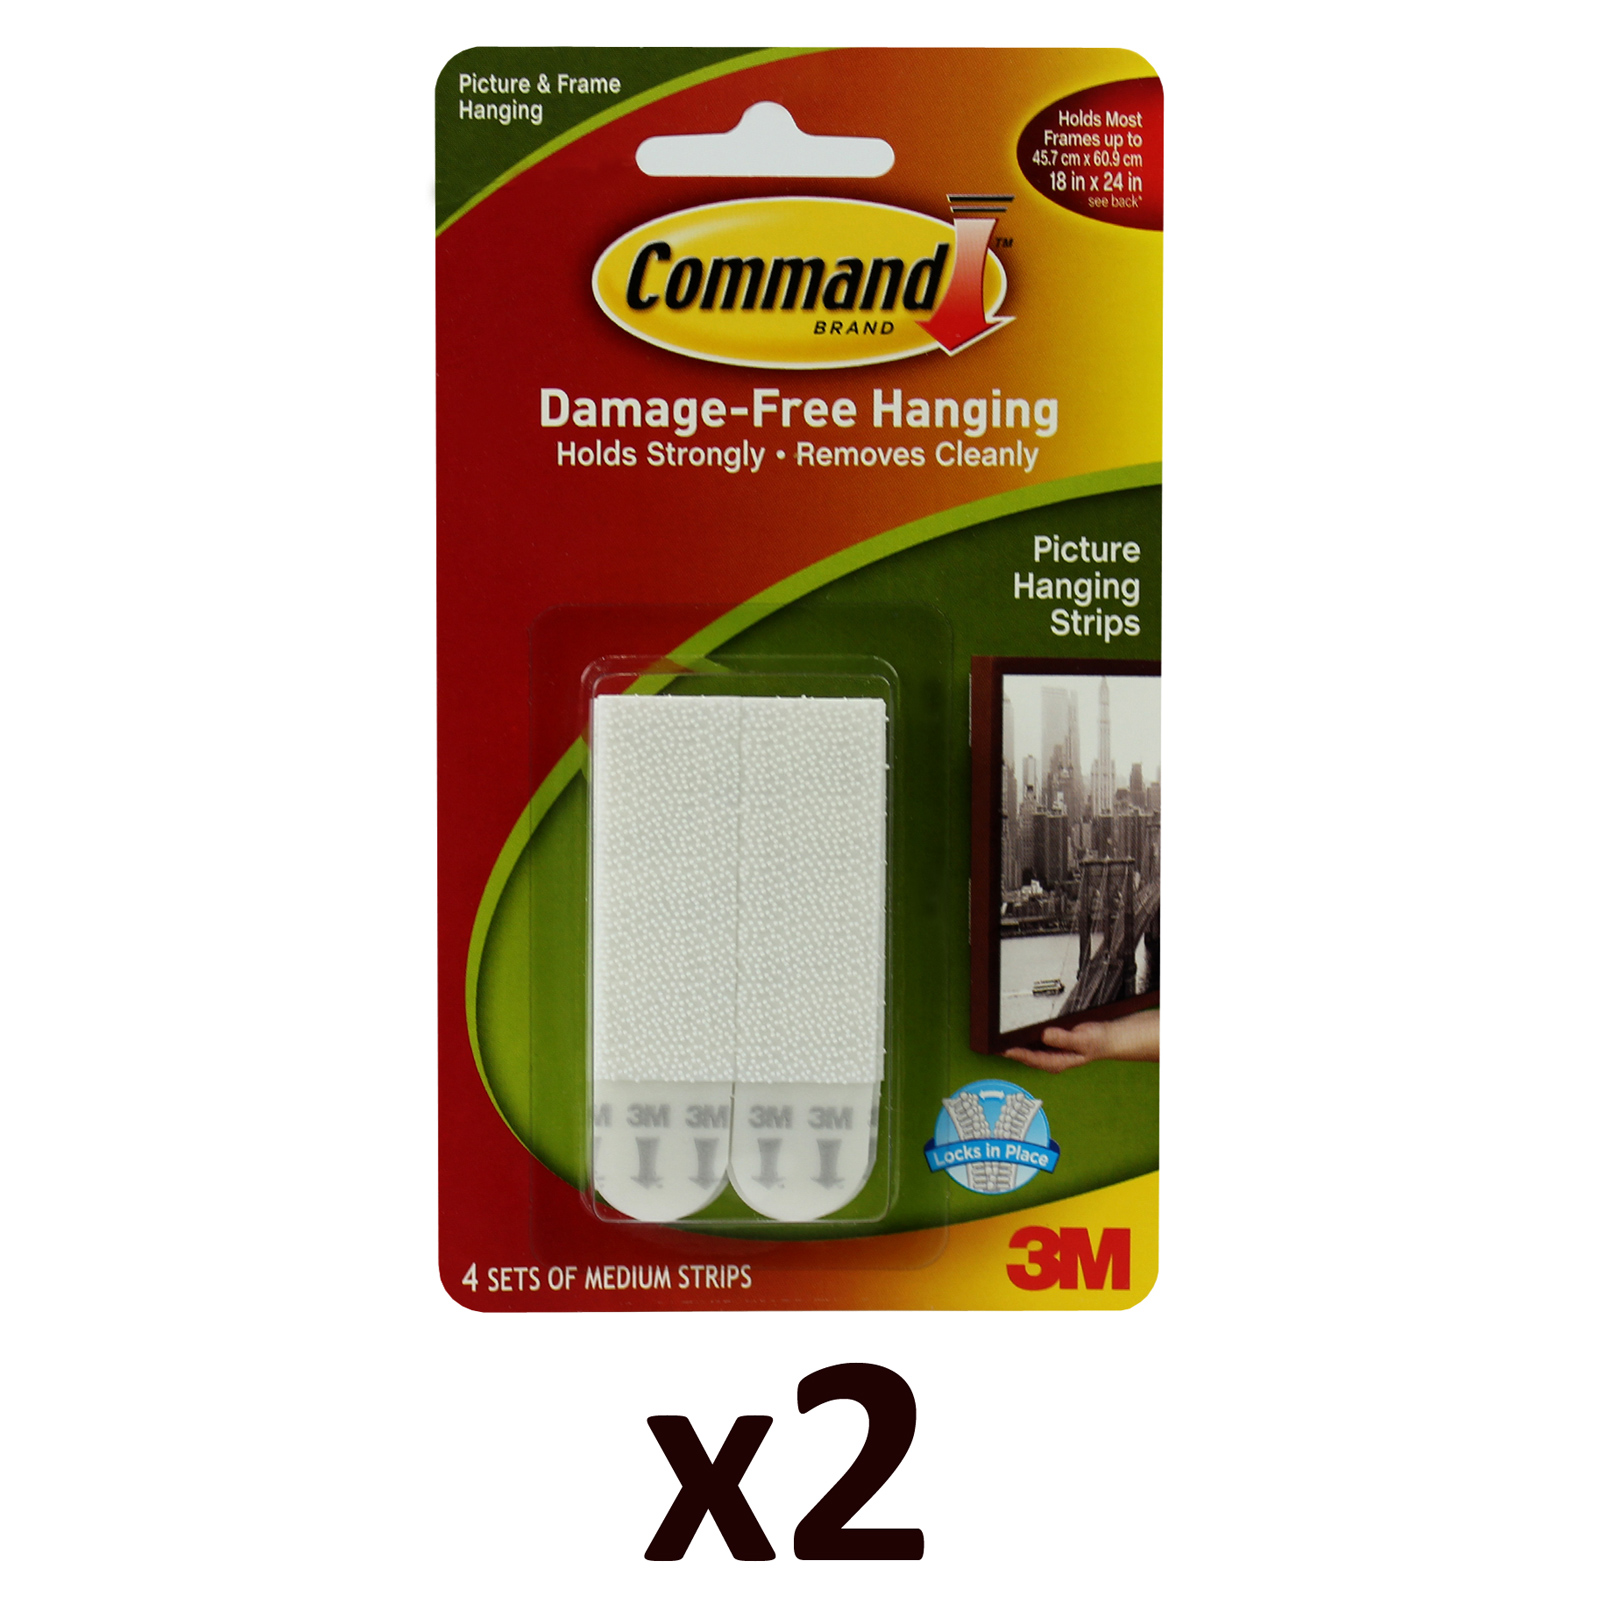 2x 3M Command Medium Pack of 4 Damage Free Wall Hanging Adhesive Strips Enlarged Preview